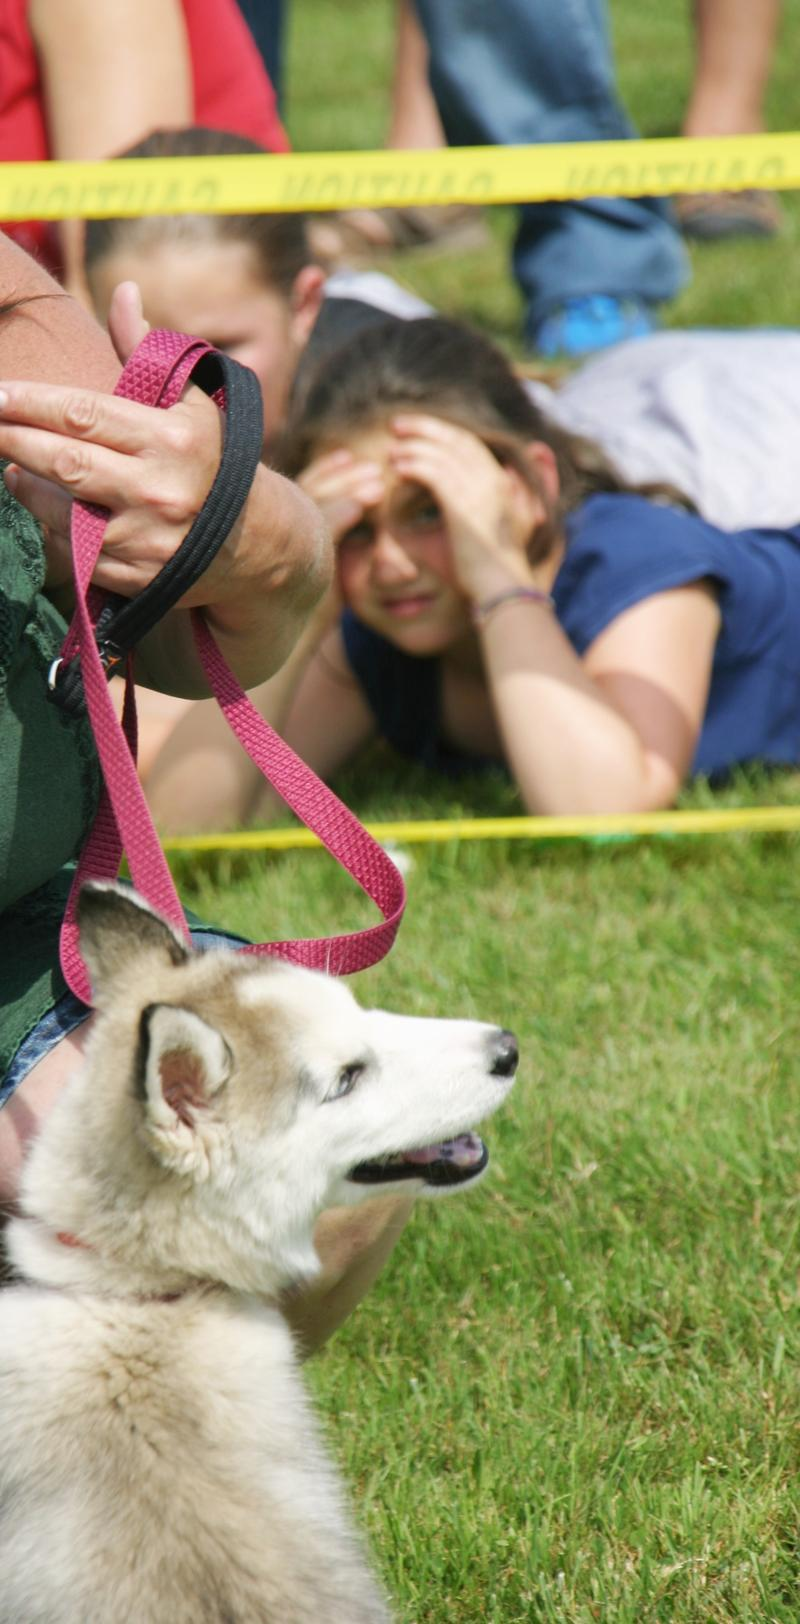 A dog show hosted by Habitat for Humanity was part of the festivities.